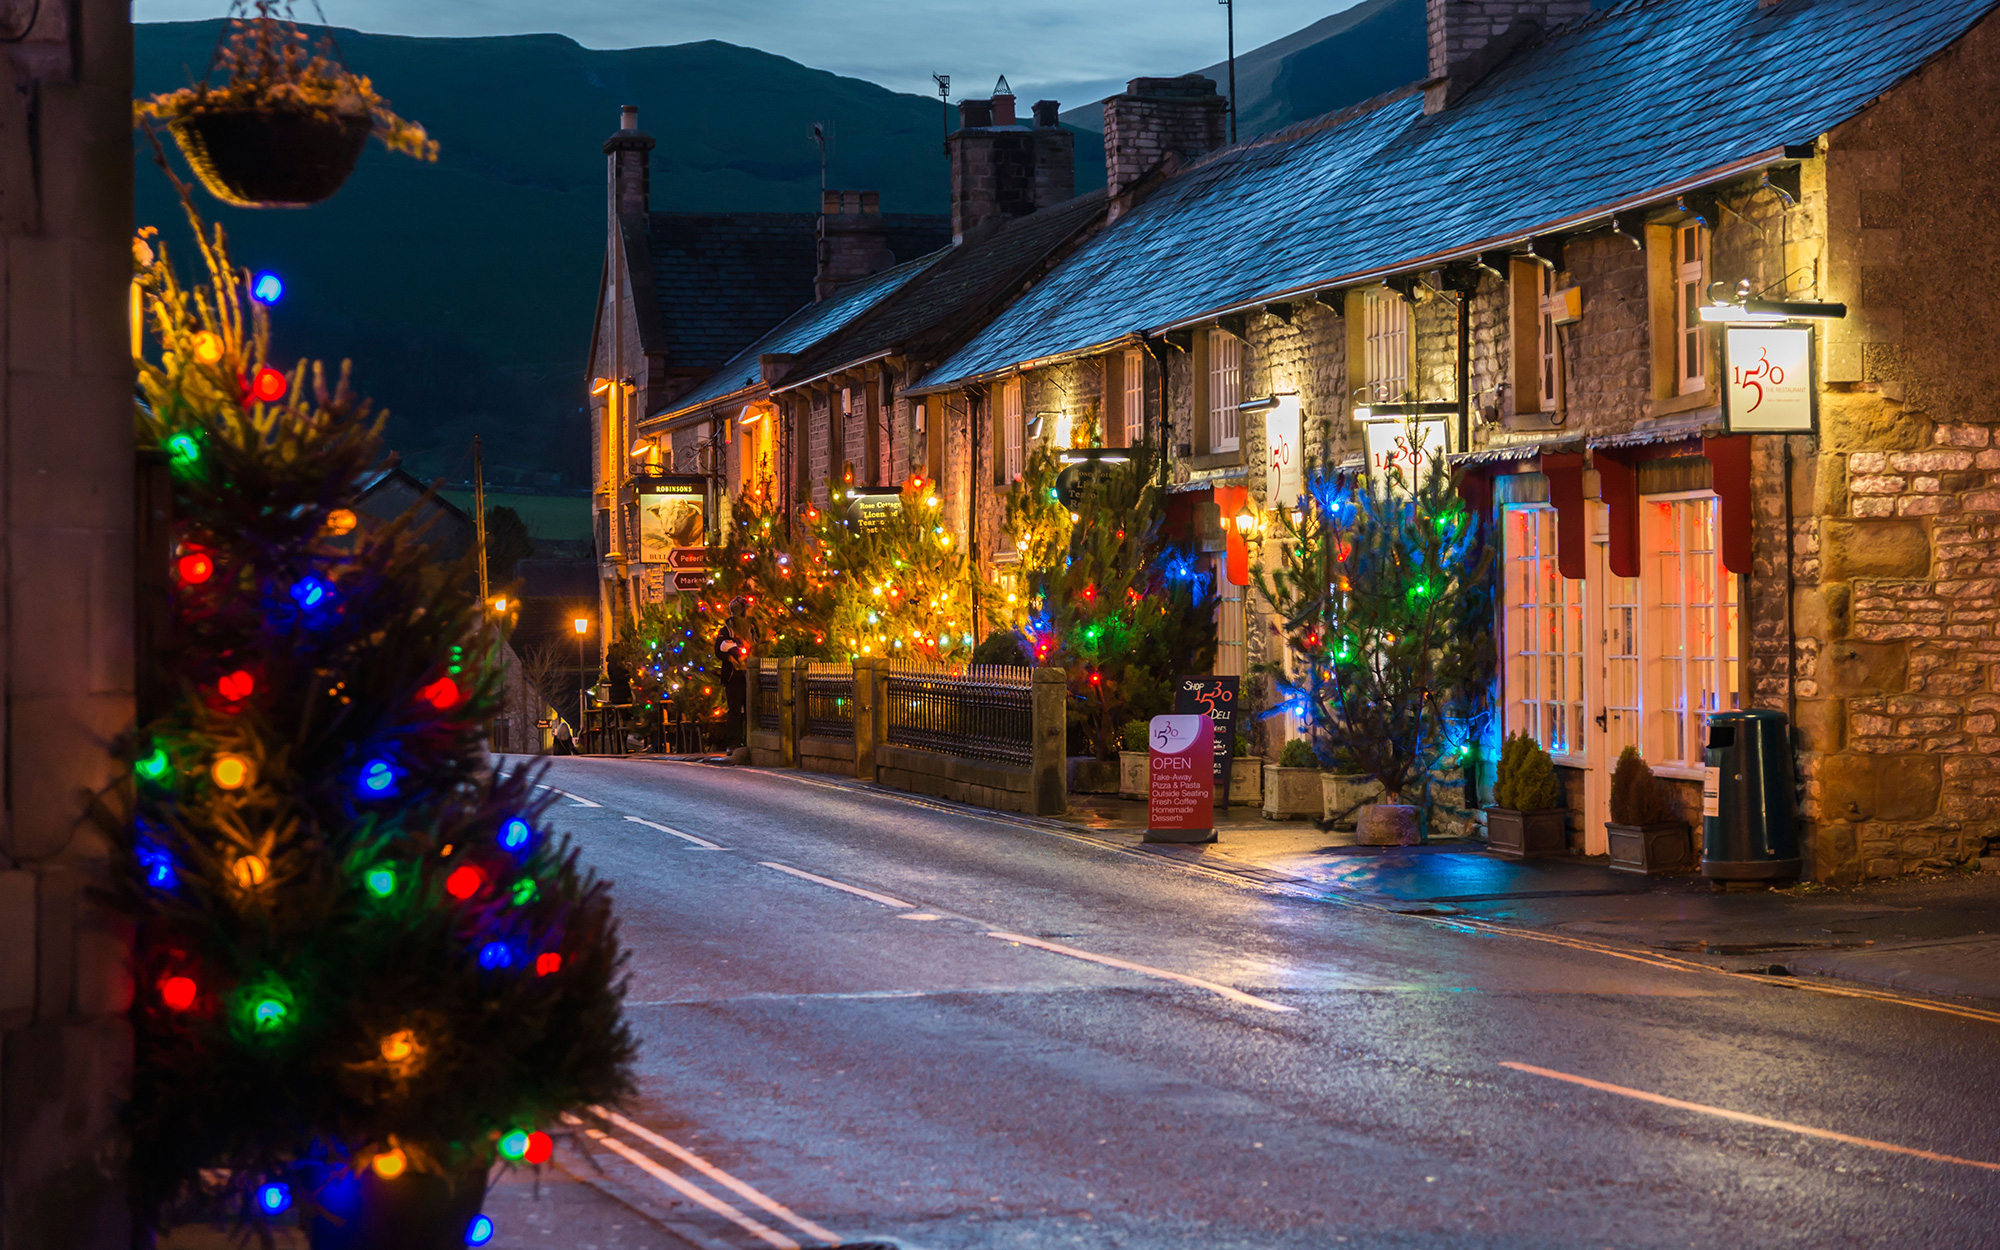 Best Places to Spend Christmas: Castleton, England